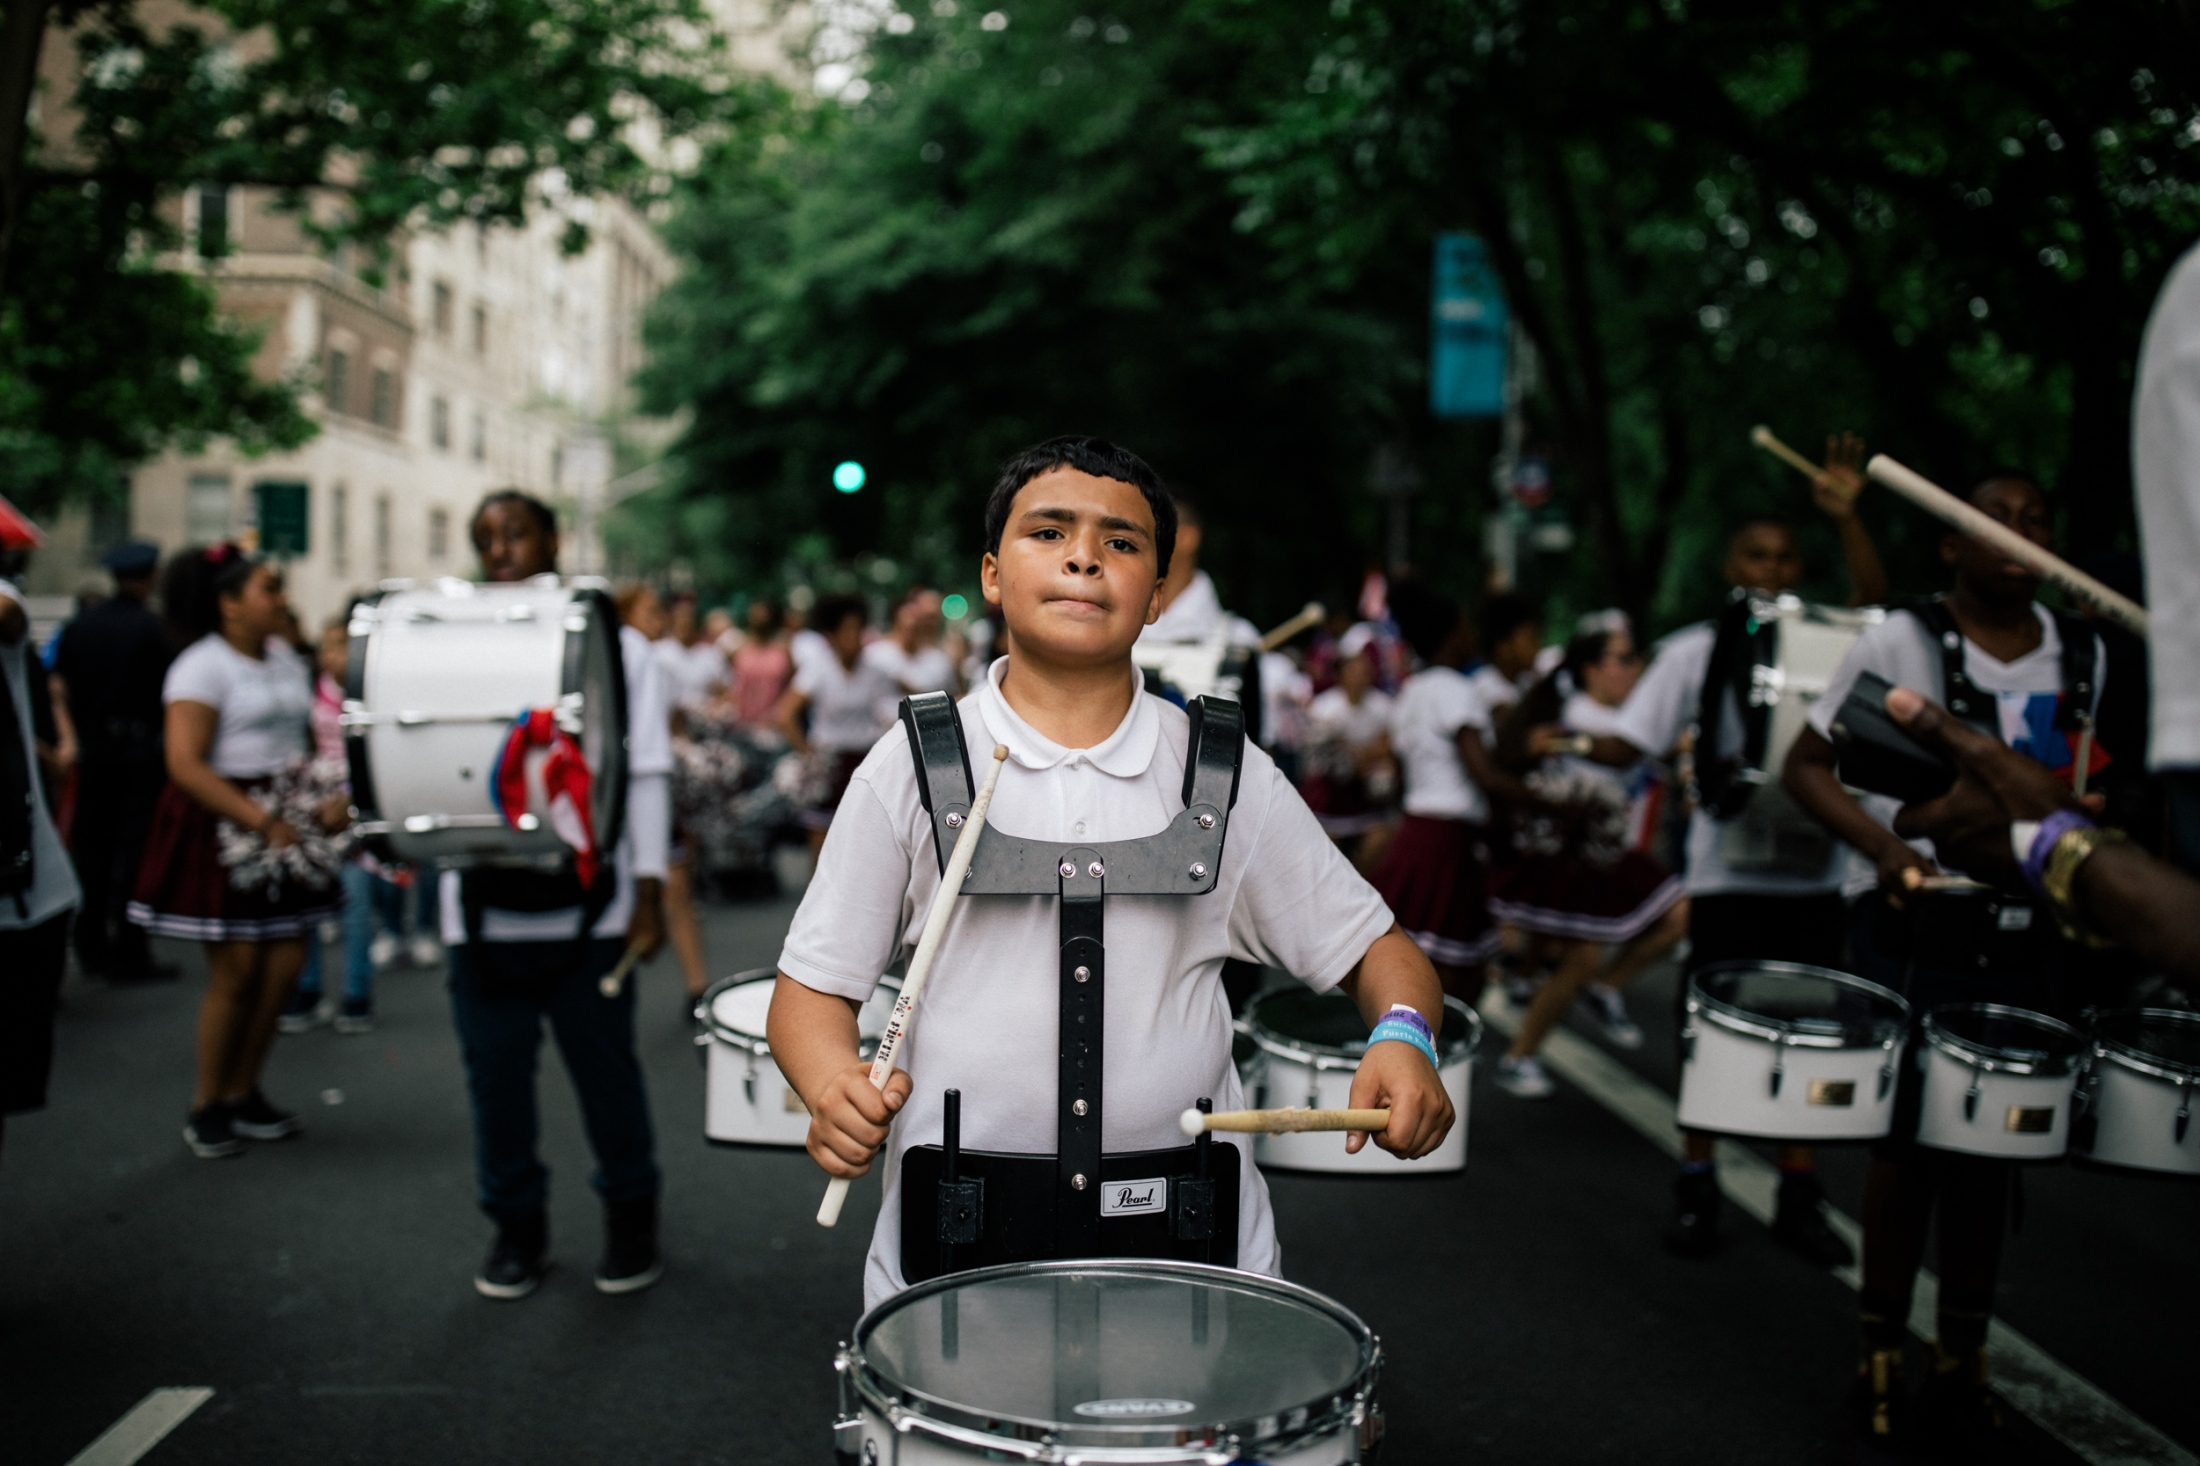 A young drummer plays the snare drum as he marches down Fifth Avenue.